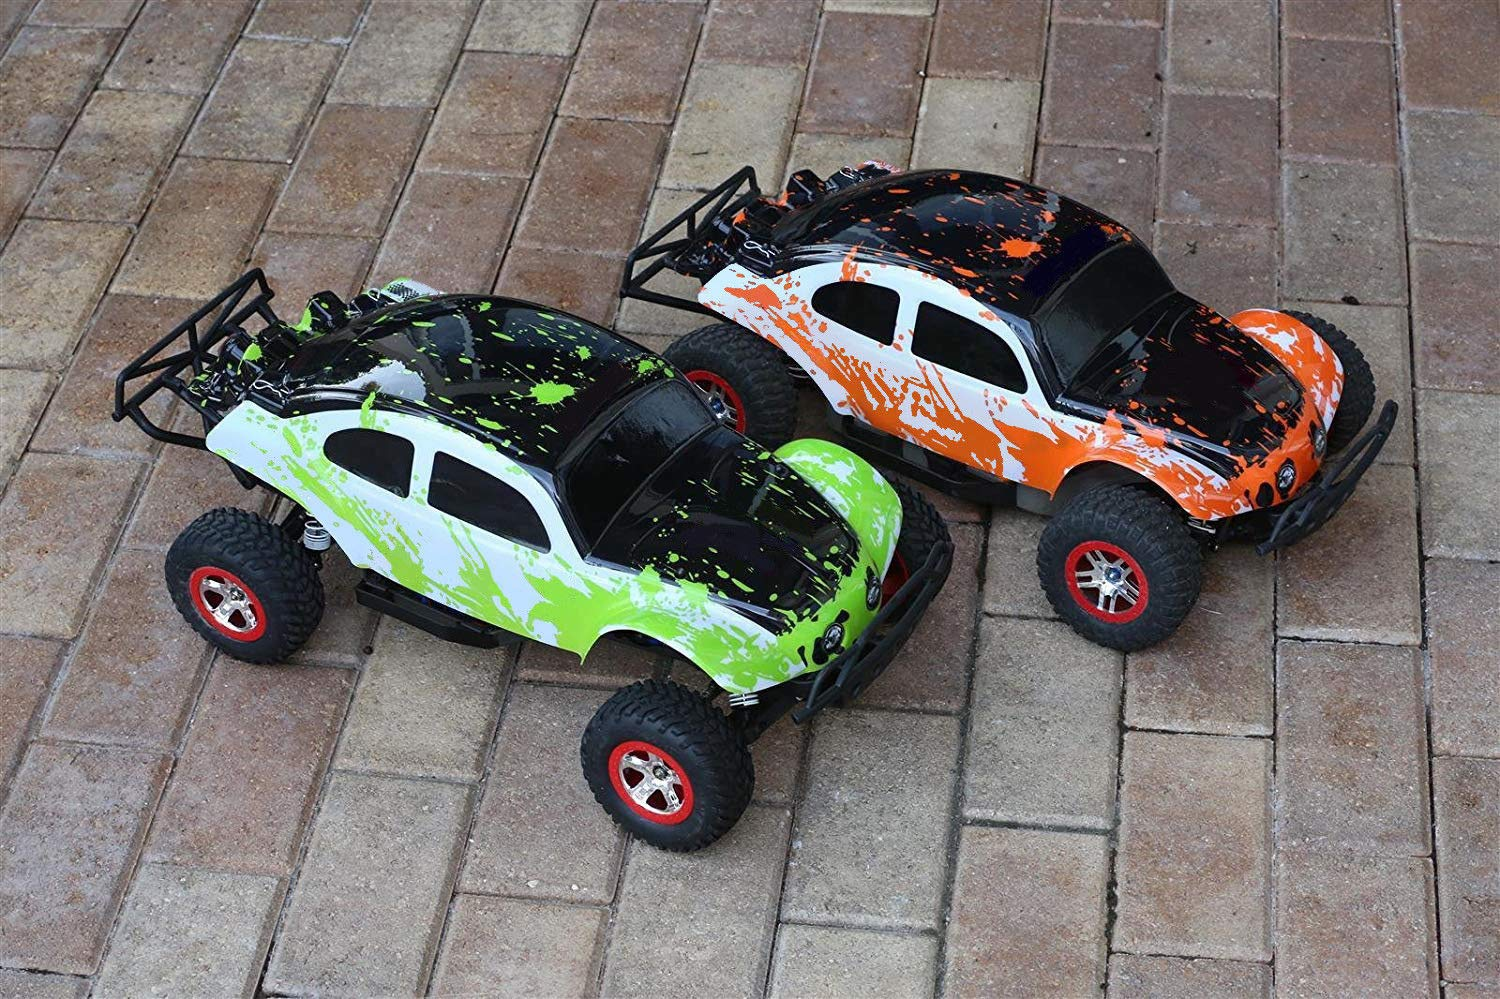 SummitLink 2pk Combo Set Compatible Custom Body Muddy Orange Over White/Black Green Over White/Black Replacement for 1/10 Scale RC Car or Truck (Truck not Included) SSB-WBRG-02